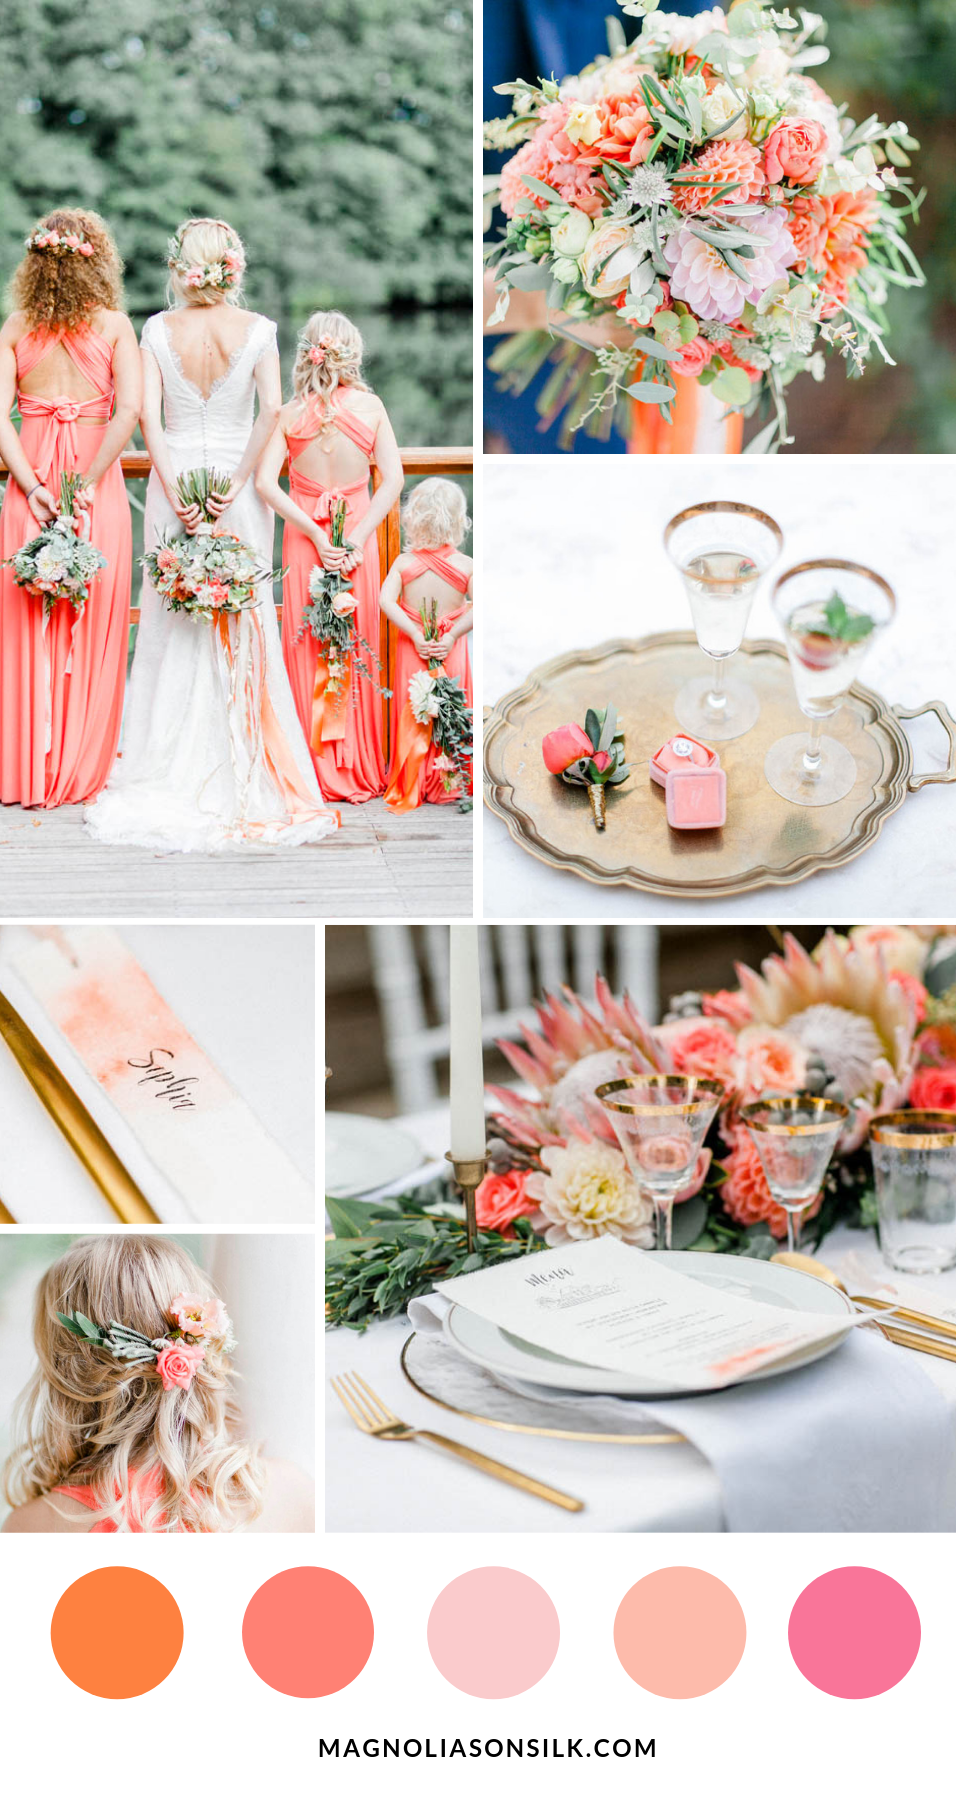 Luxurious Wedding Inspiration in Coral and Apricot | Magnolias on Silk